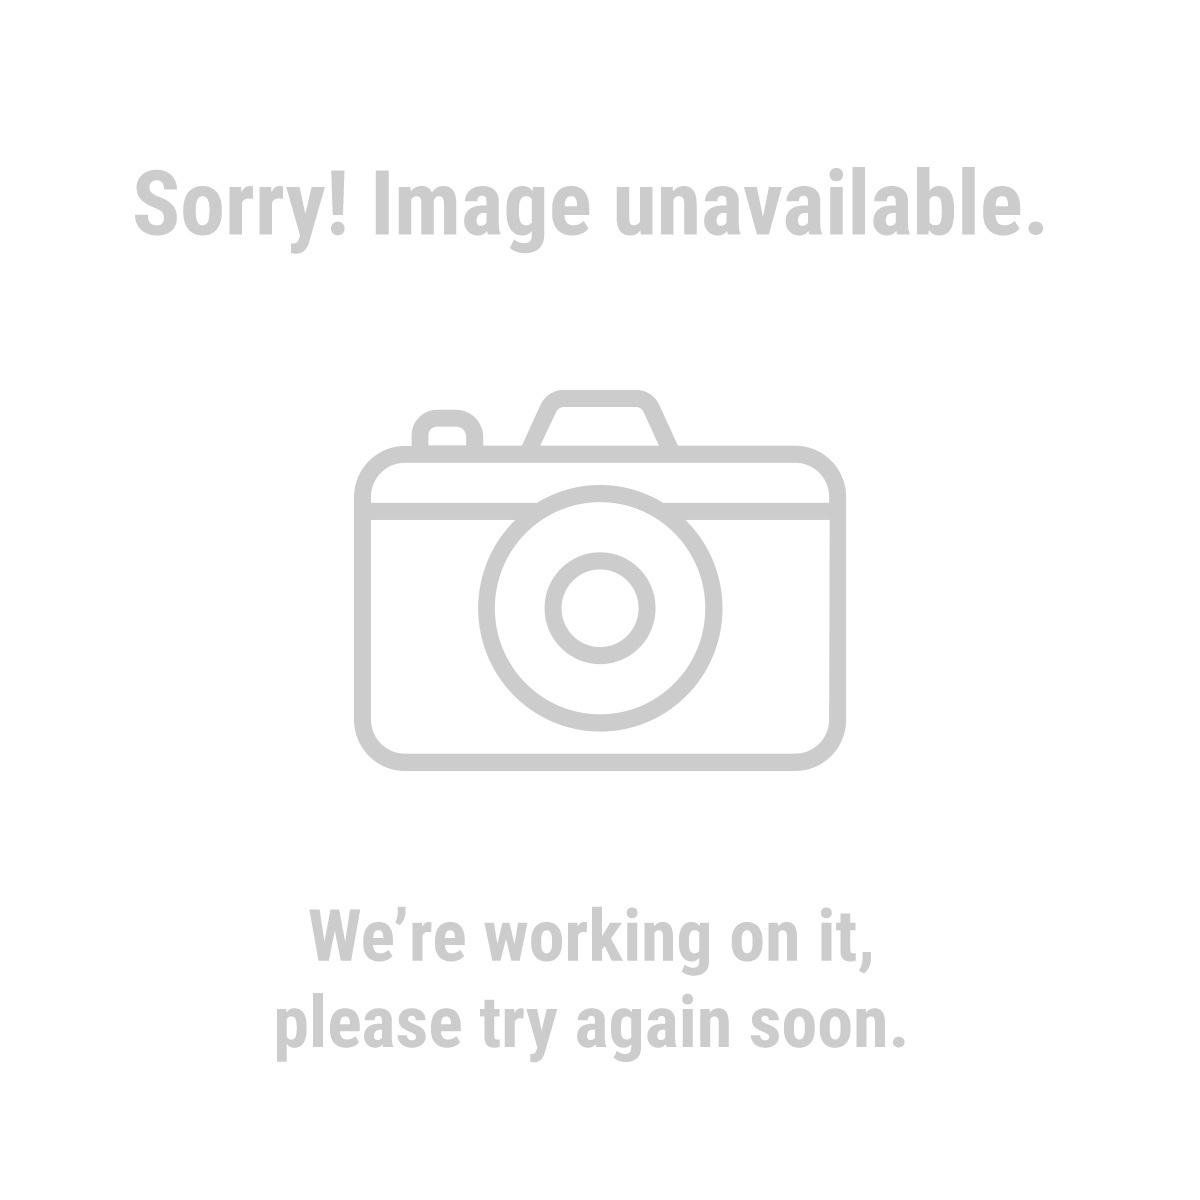 Pittsburgh® Automotive 60569 Racing Jack with Rapid Pump®, Compact, 1.5 Ton, Aluminum